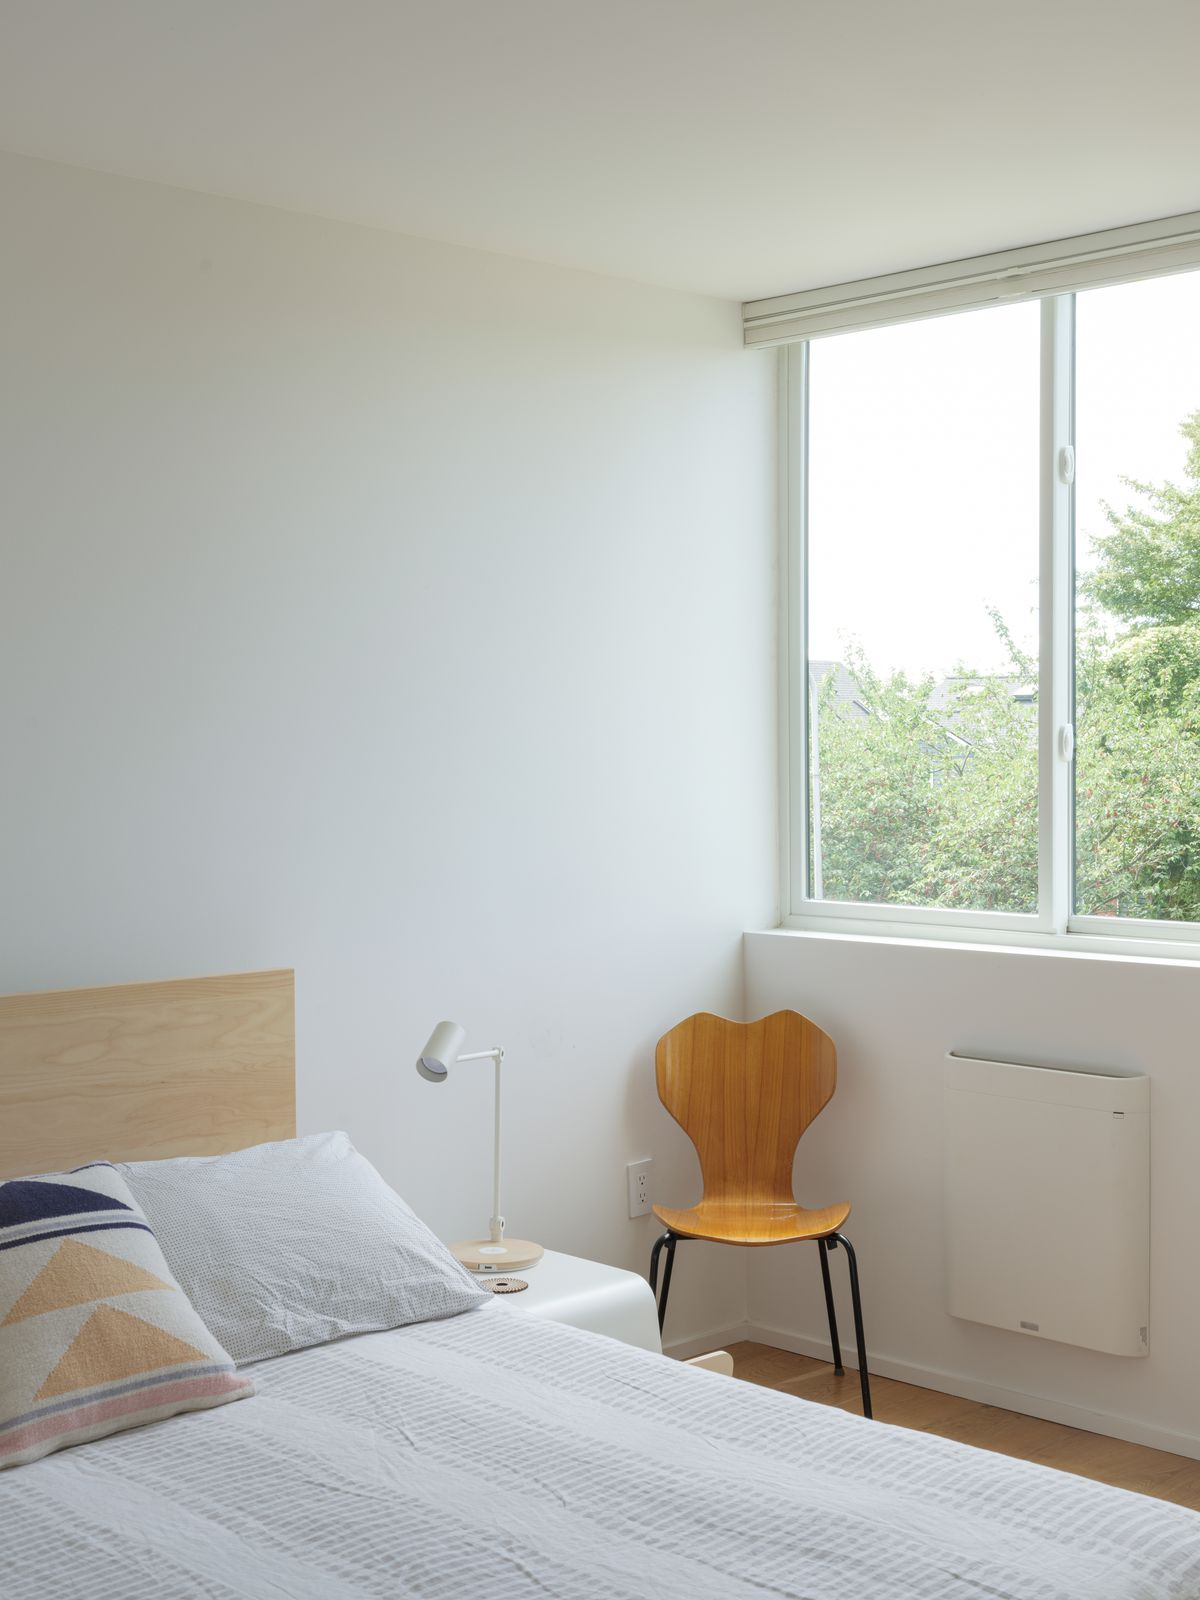 A bedroom with a bed that has patterned white bed linens and multiple pillows. There is a wooden chair. A window has a view overlooking trees.